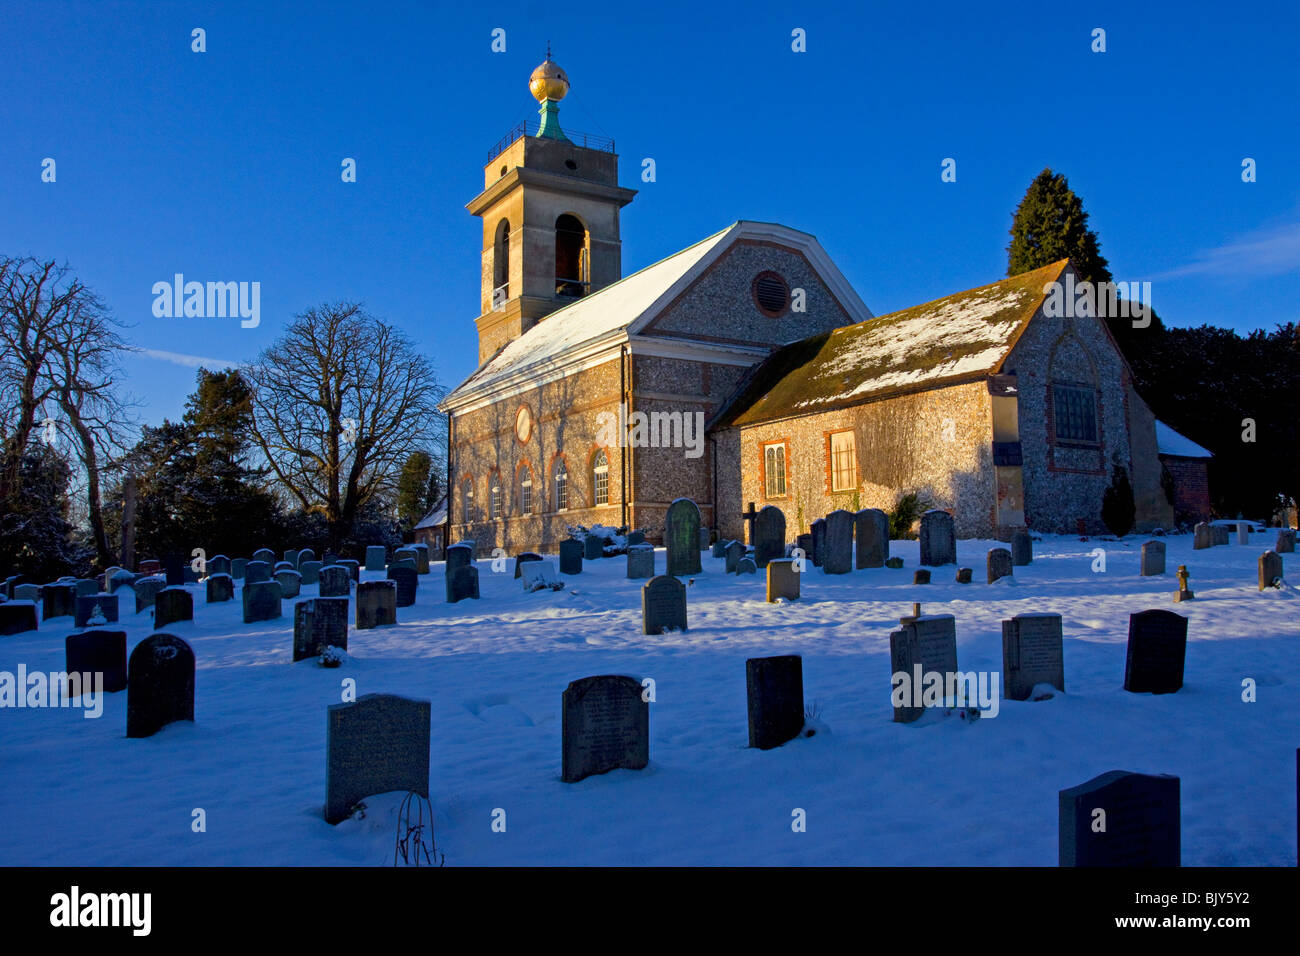 West Wycombe church in snow Hellfire Dashwood Buckinghamshire Chilterns winter - Stock Image